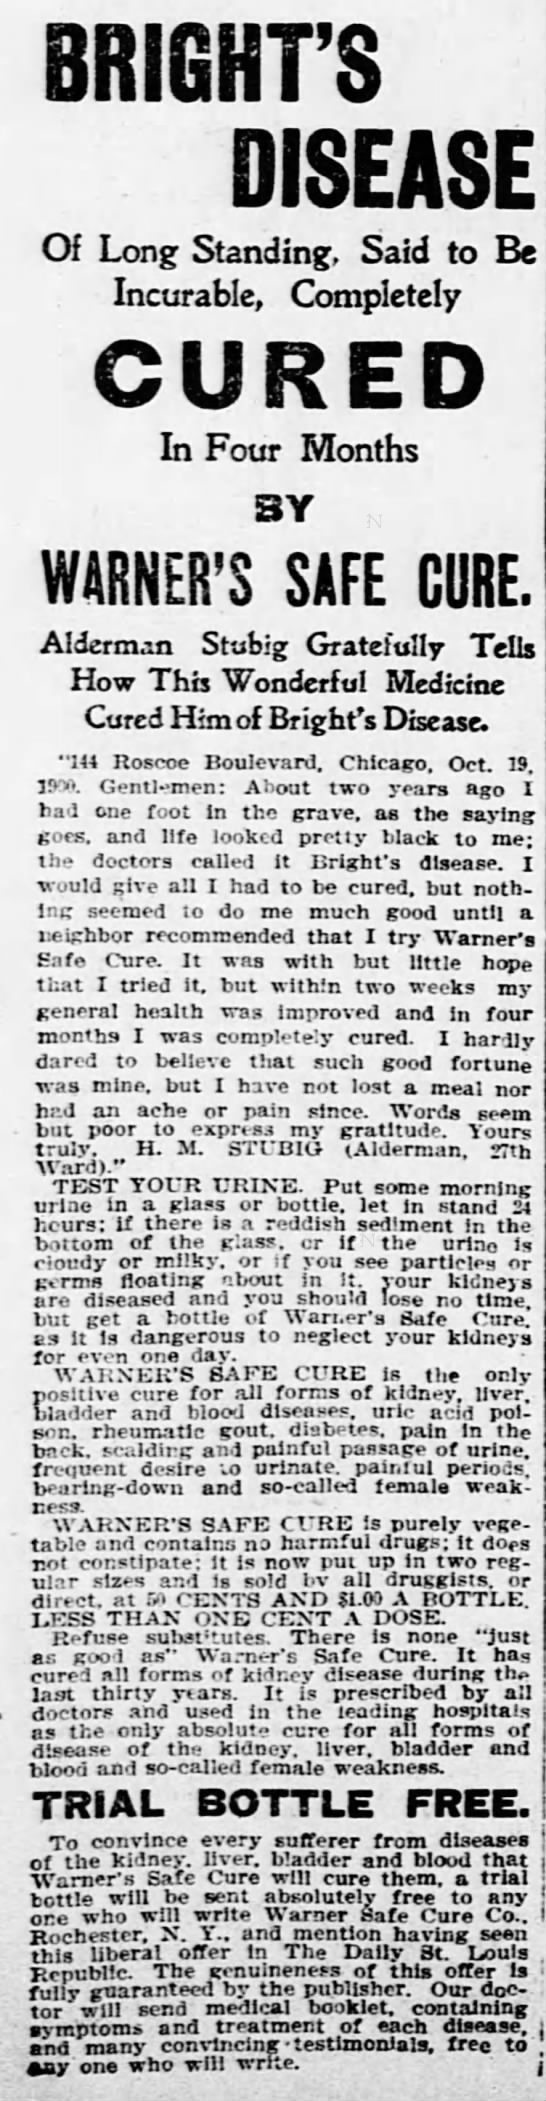 Bright's Disease Cured - The St. Louis Republic (St. Louis, MO) - 26 Mar 1902 - 3RI0HFS Of Long Standing, Said to Be Incurable,...